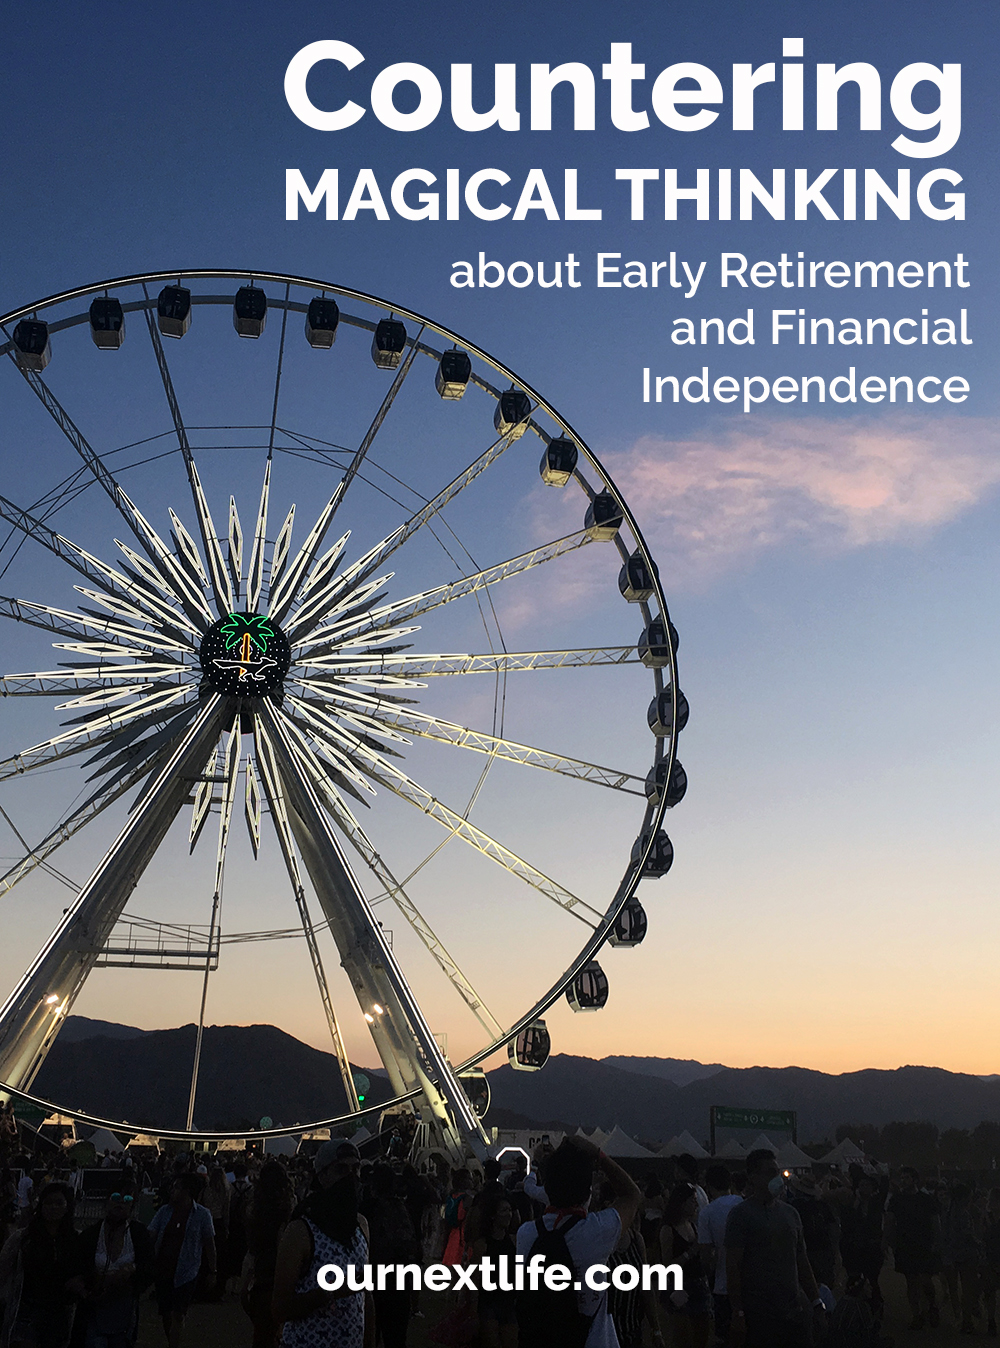 Countering magical thinking about early retirement and financial independence, expectations and happiness, not setting yourself up for disappointment in retirement